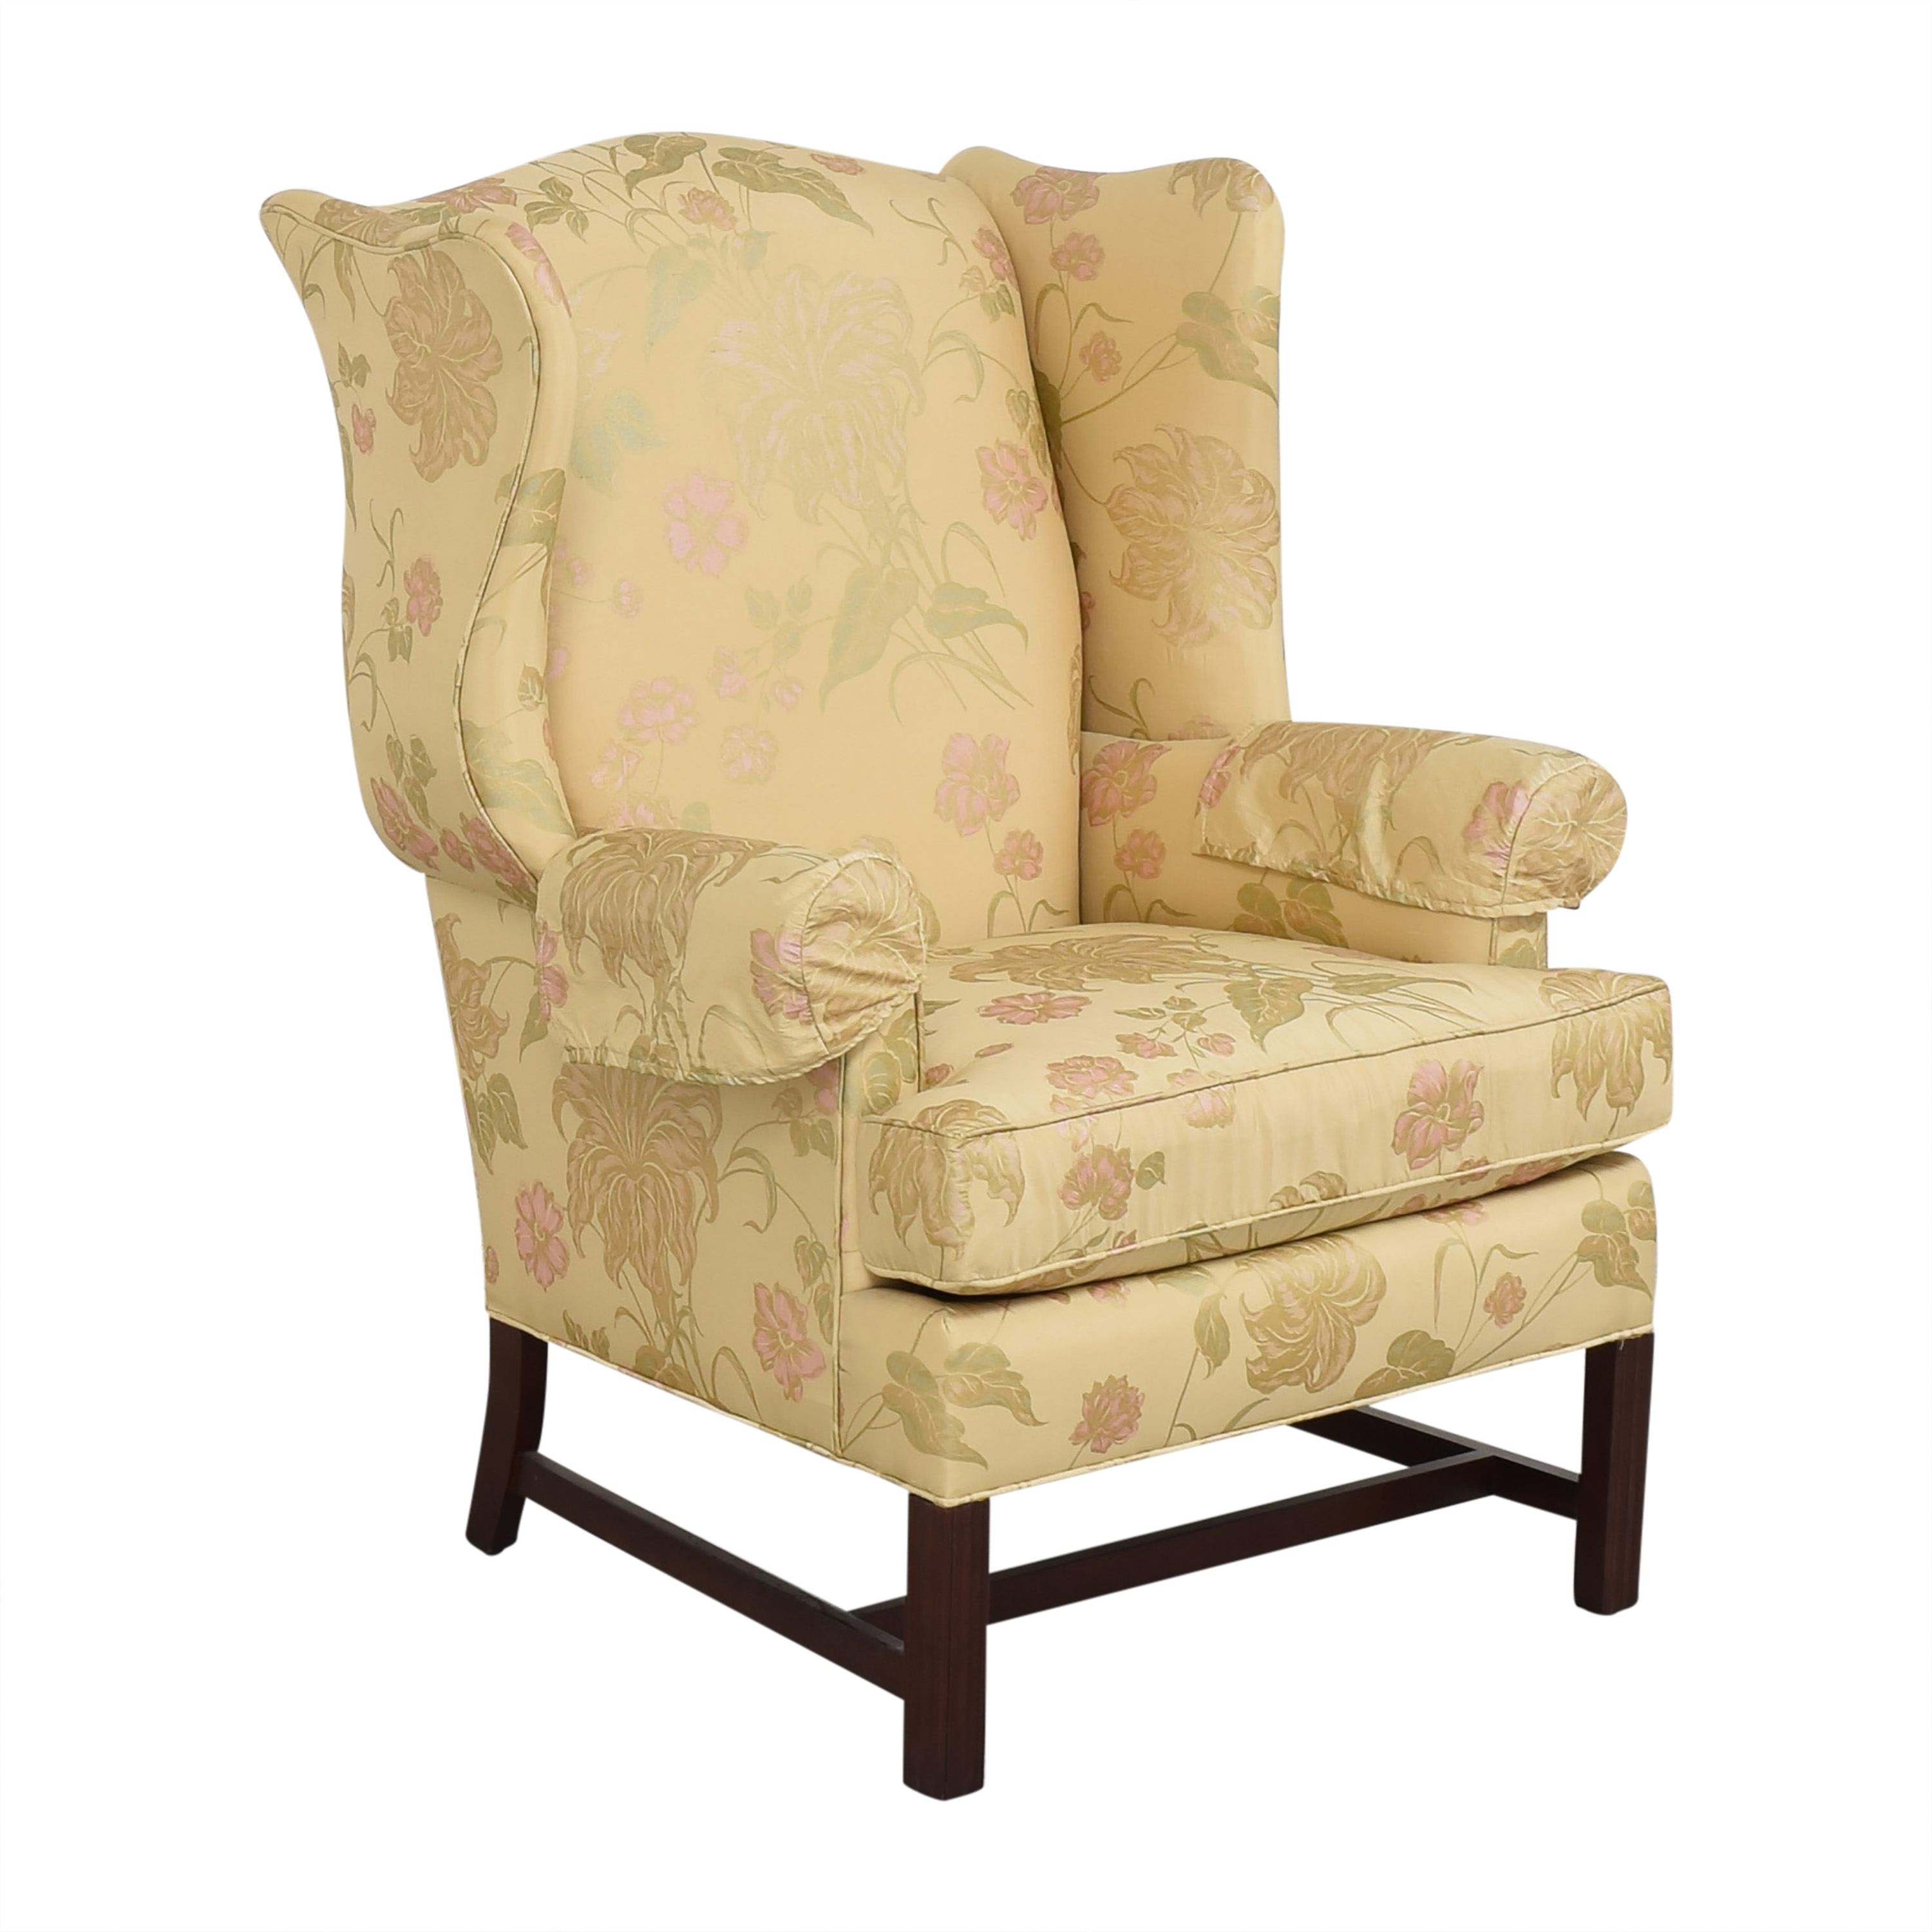 CR Laine CR Laine Upholstered Accent Chair gold